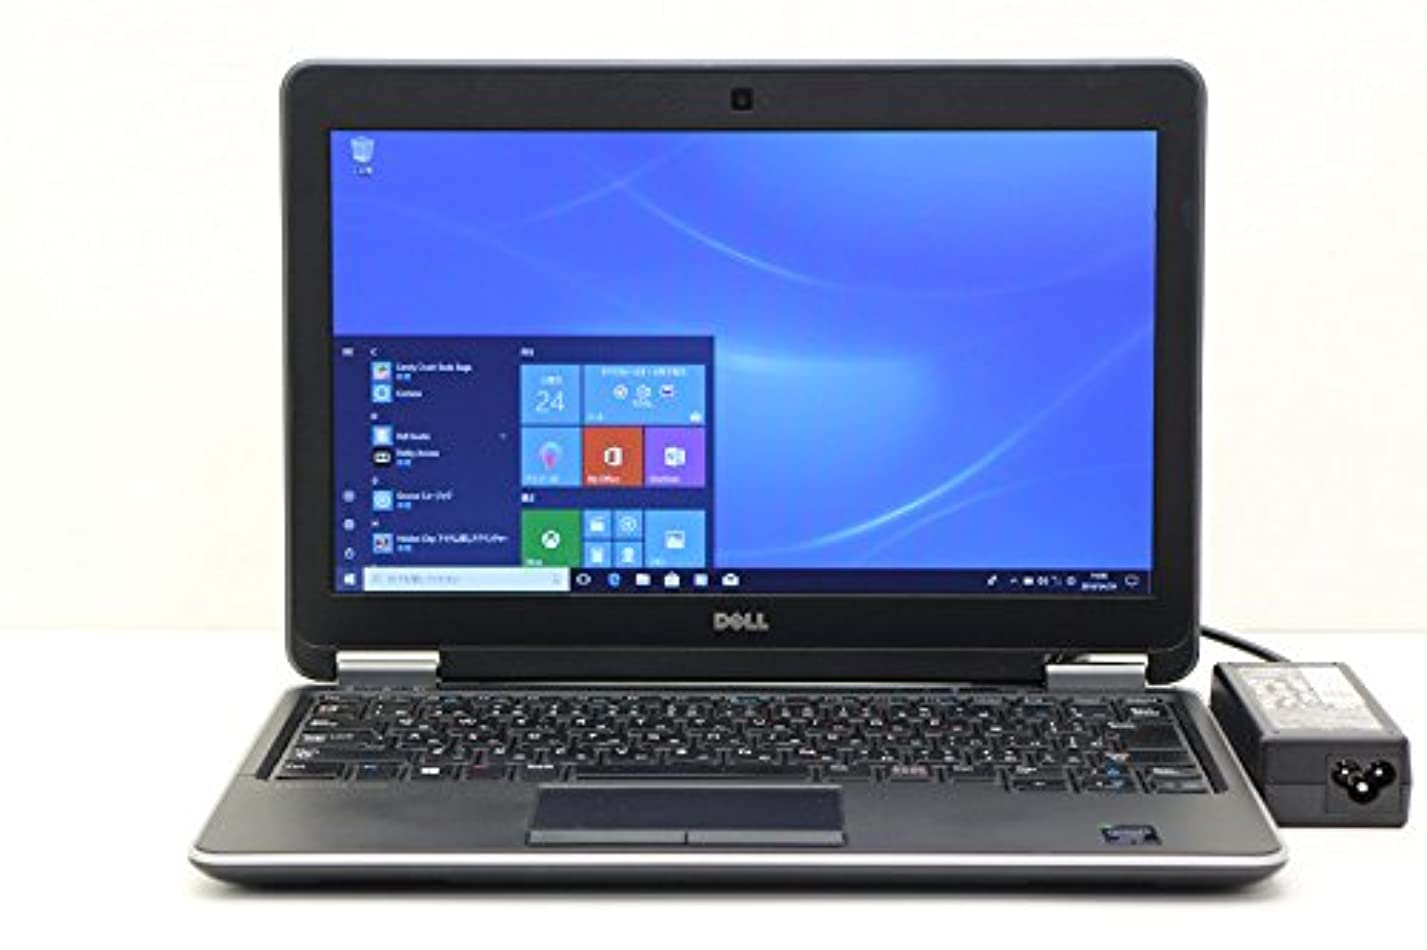 信じる豊富タクト【中古】 DELL Latitude E7240 Core i5 4300U 1.9GHz/4GB/128GB(SSD)/12.5W/FWXGA(1366x768)/Win10